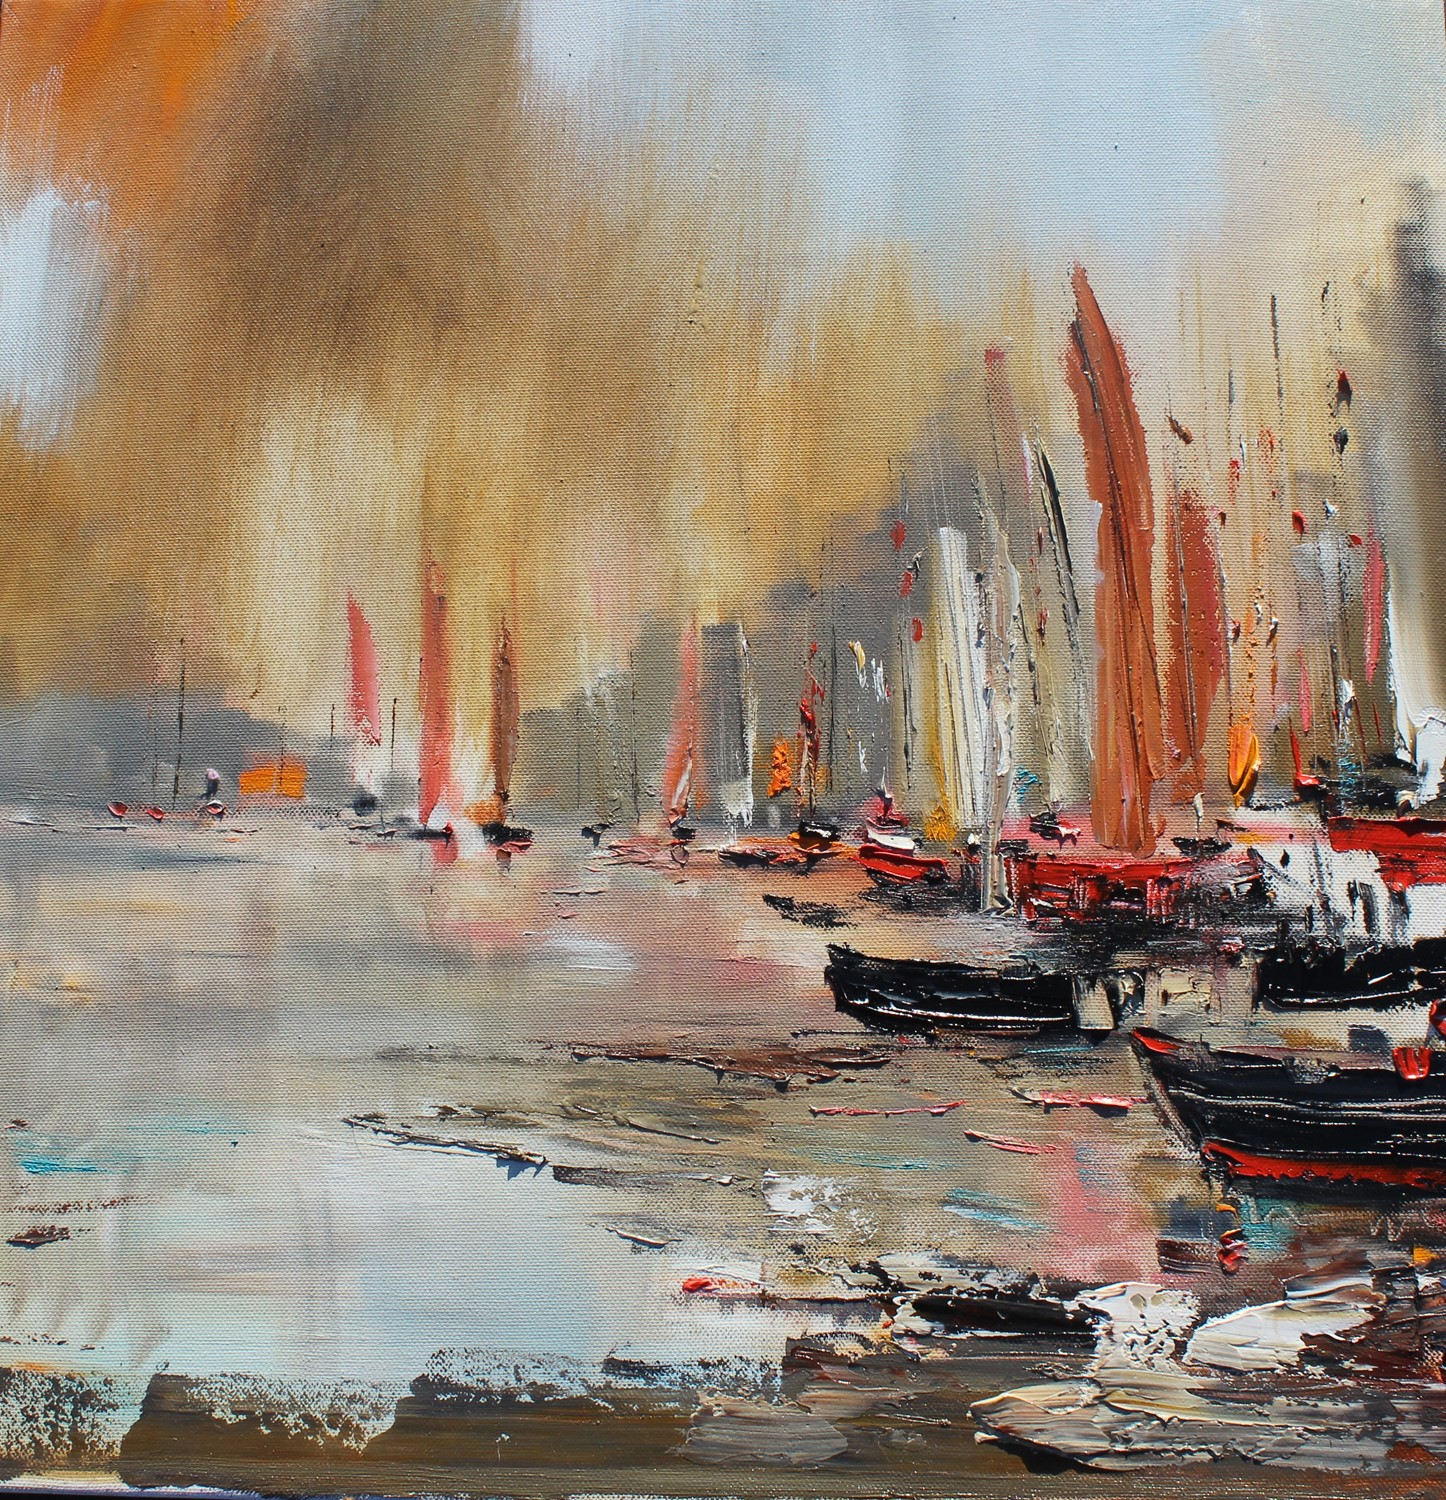 'A Fleet of Sails' by artist Rosanne Barr